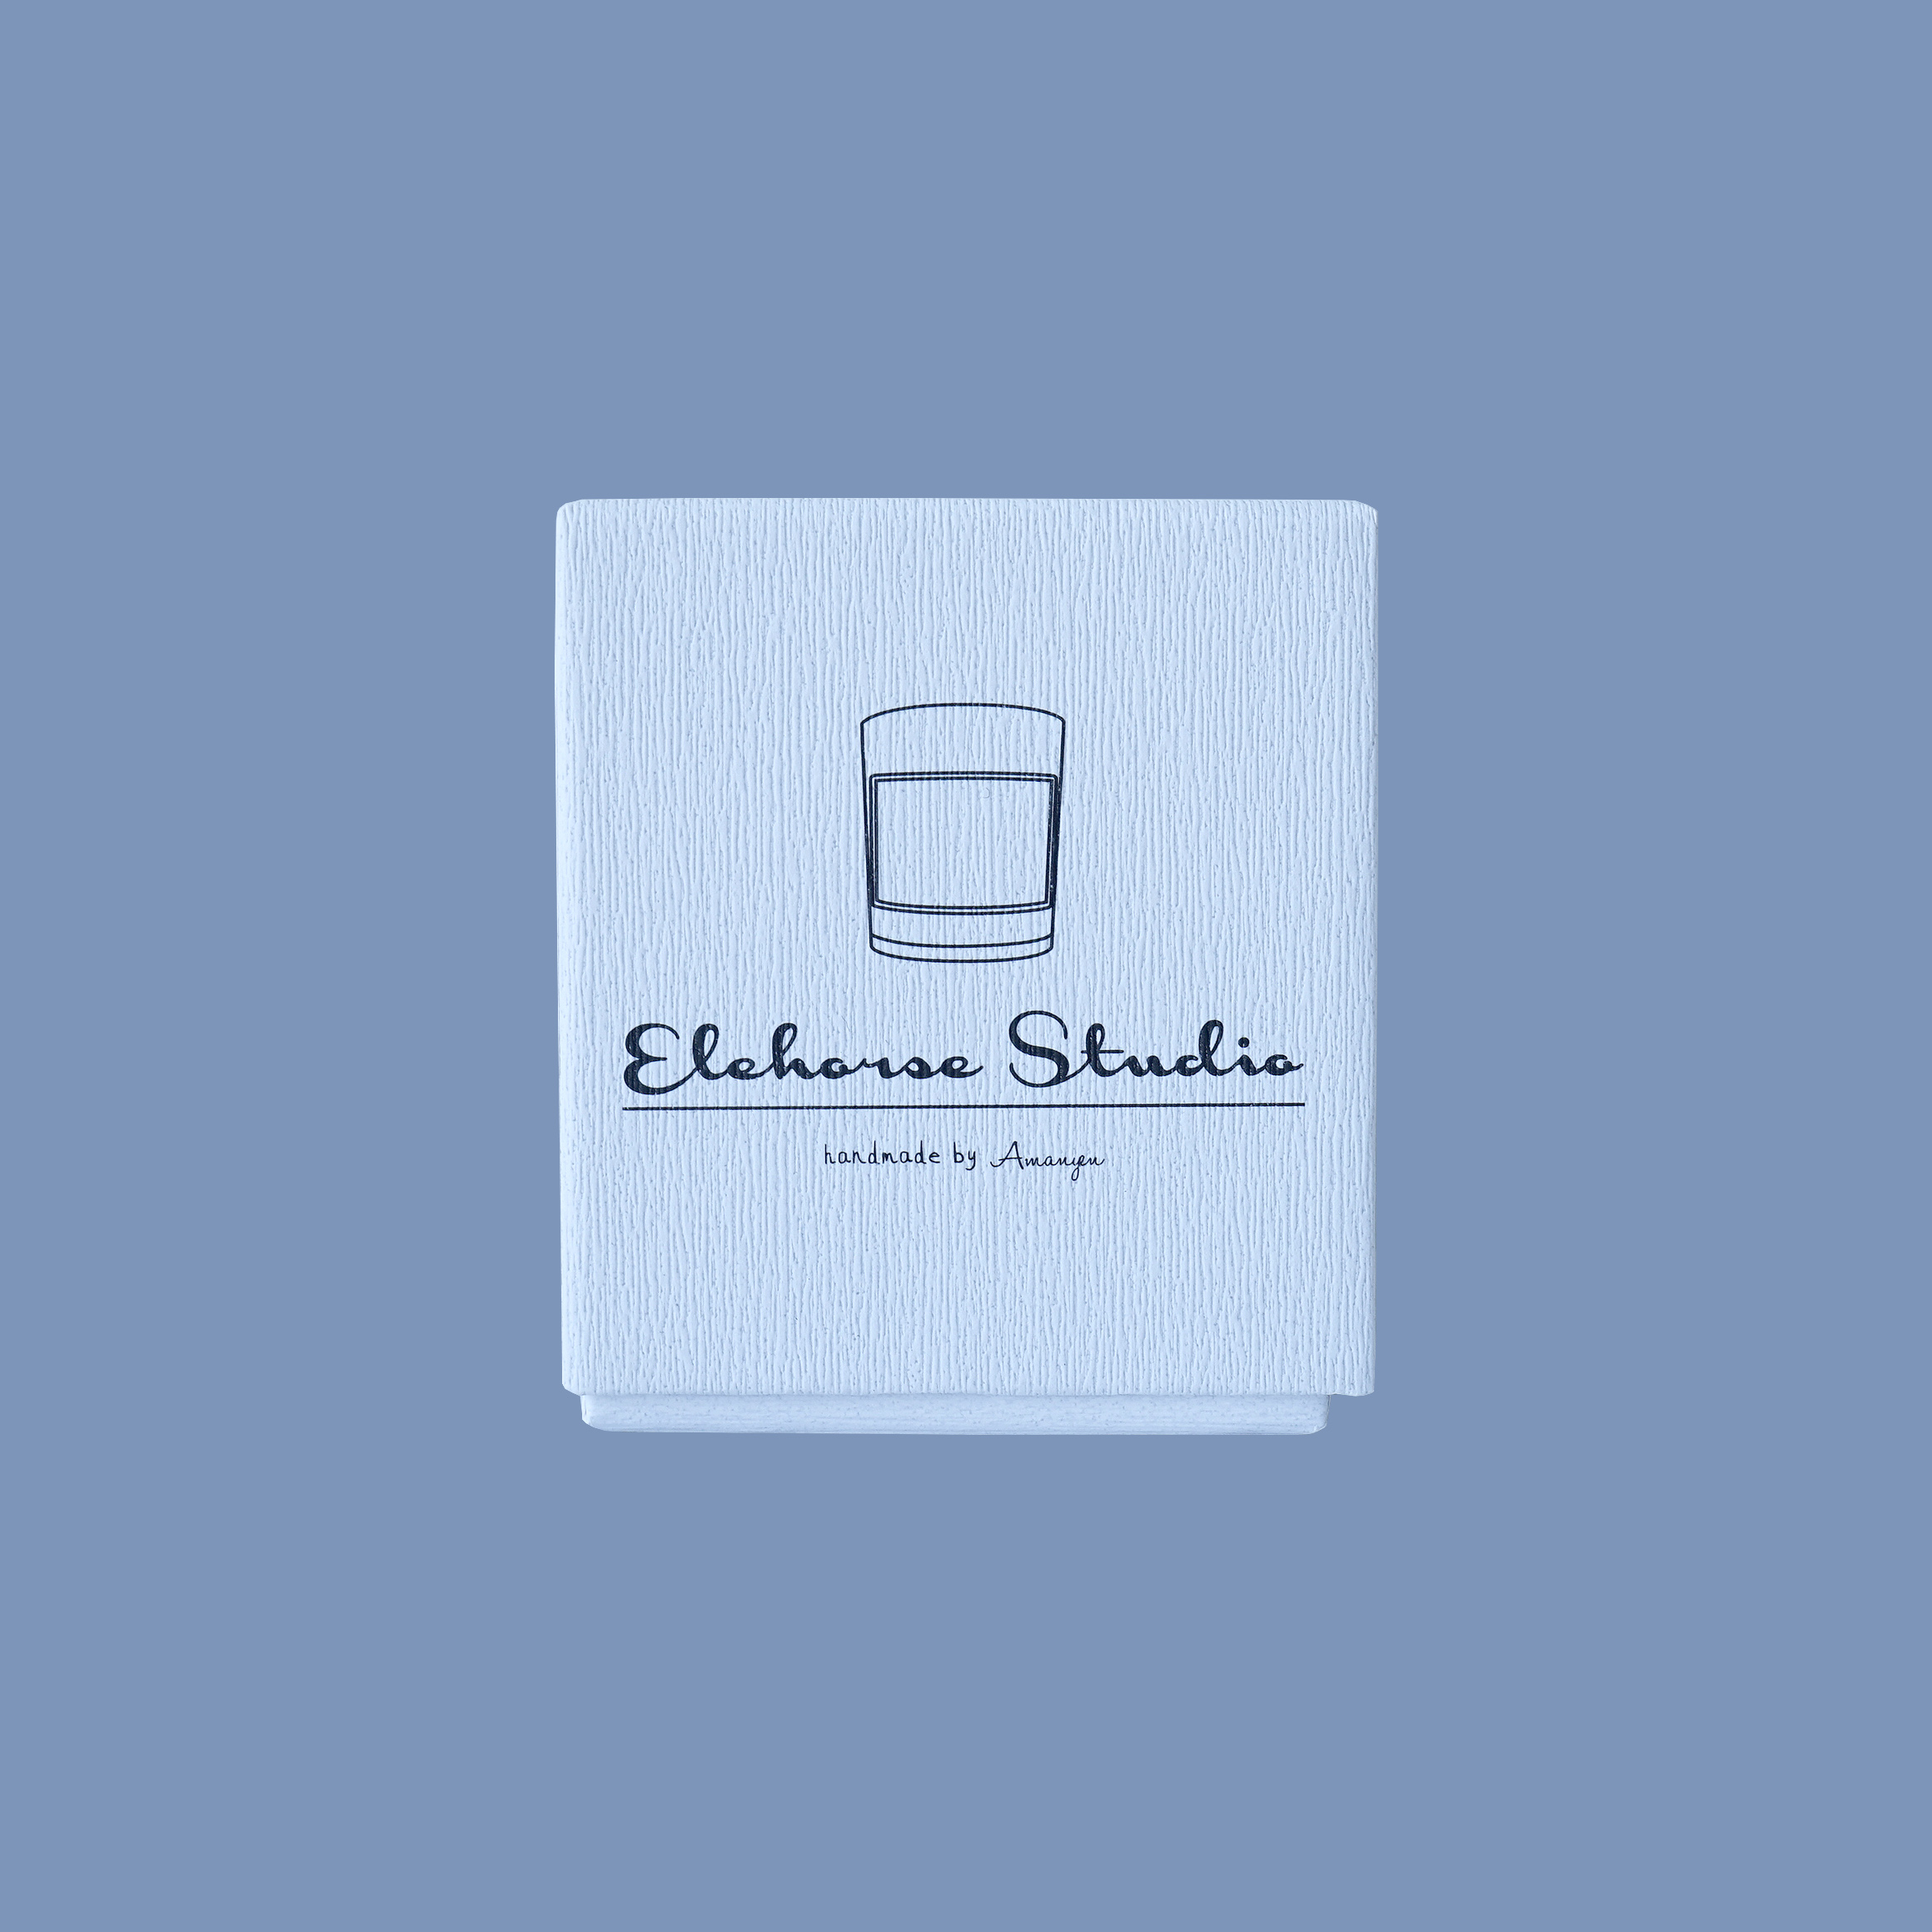 ElehorseStudio 香薰蜡烛Scented Candle No.1-10 Spring Wink